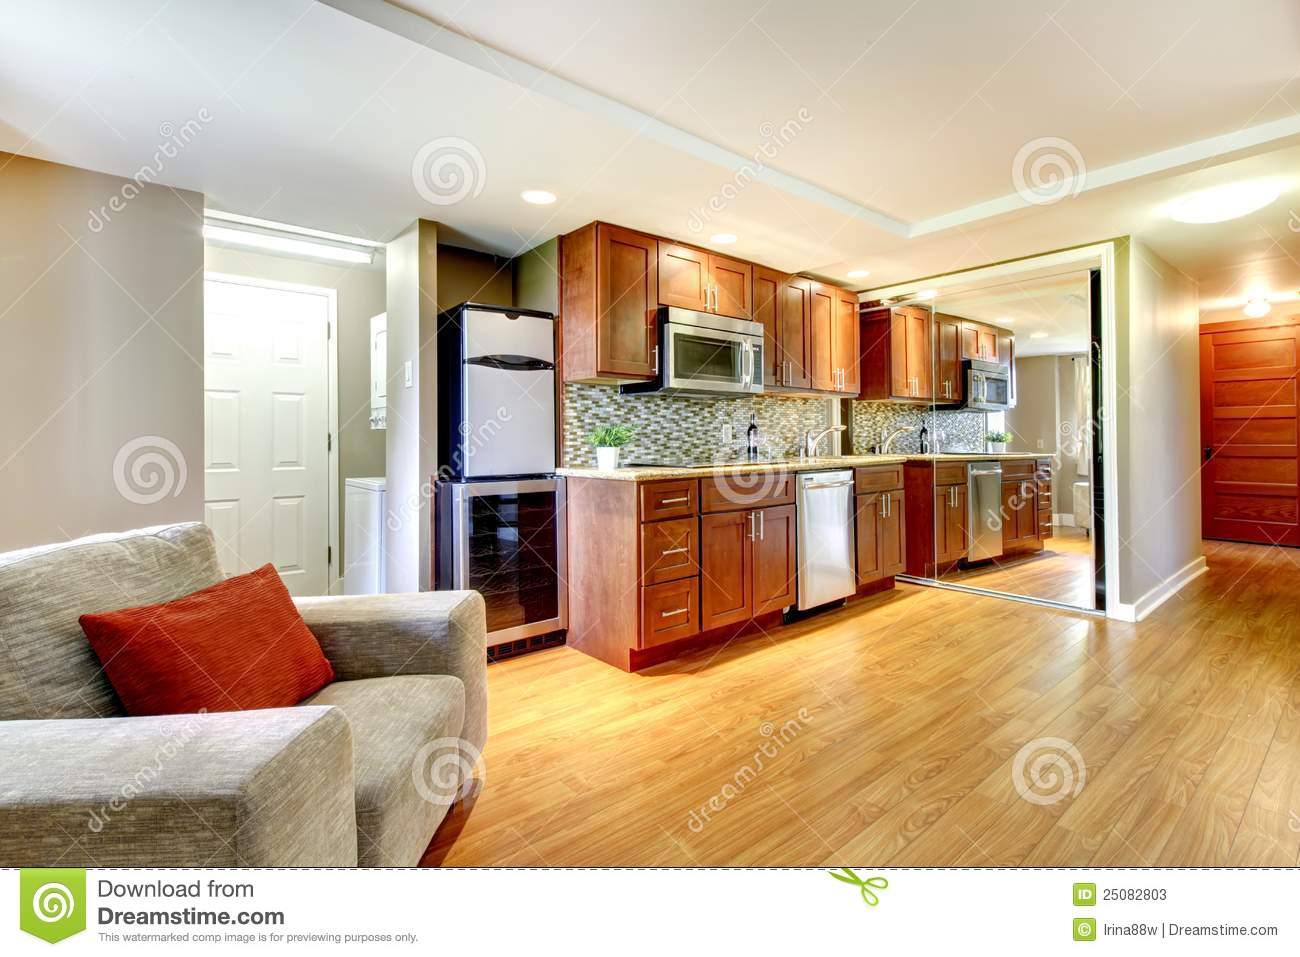 Modern Kitchen In A Luxury Apartment Royalty Free Stock